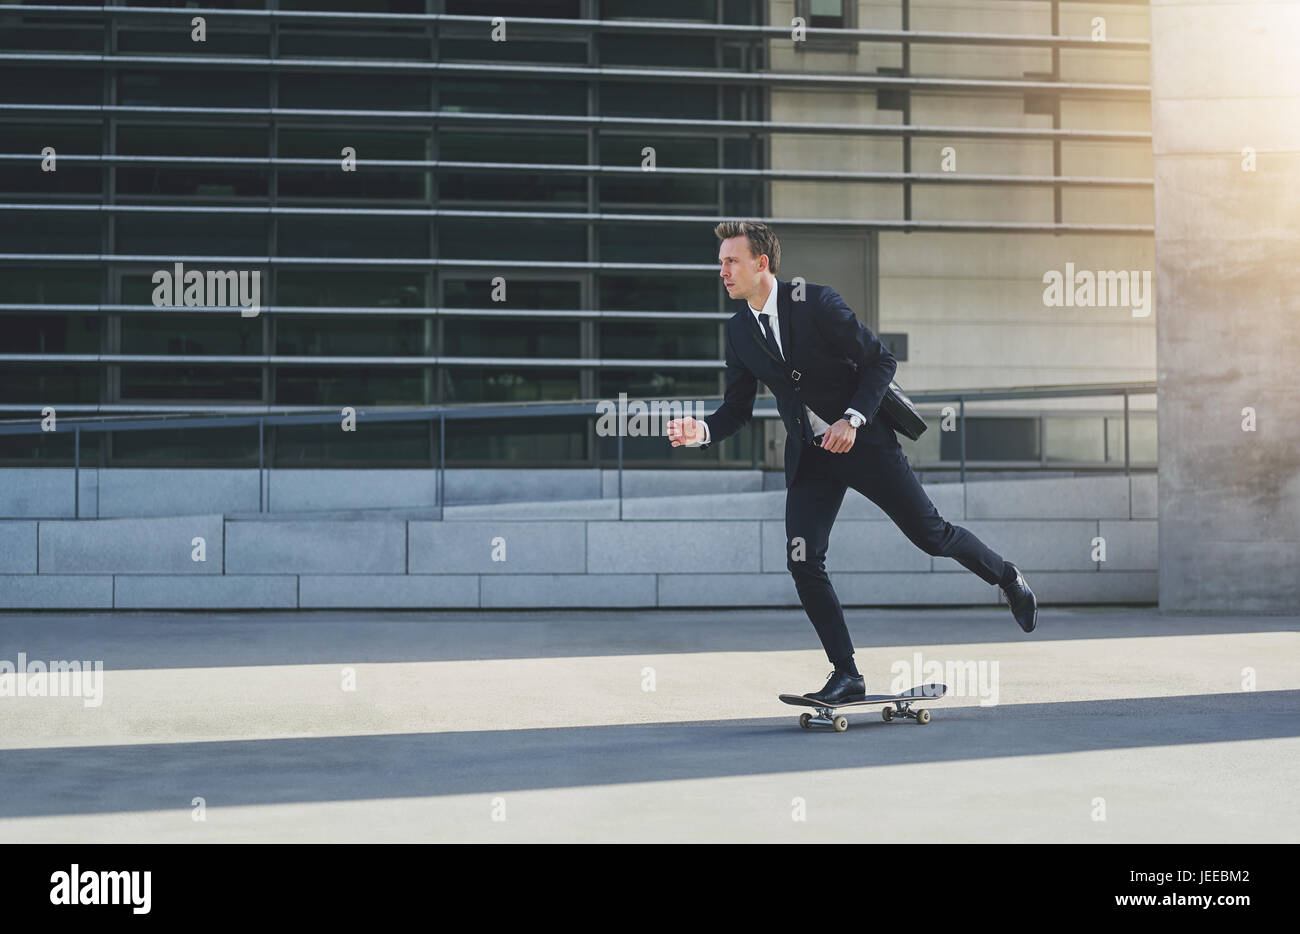 Side view of a businessman in black suit on a skateboard - Stock Image